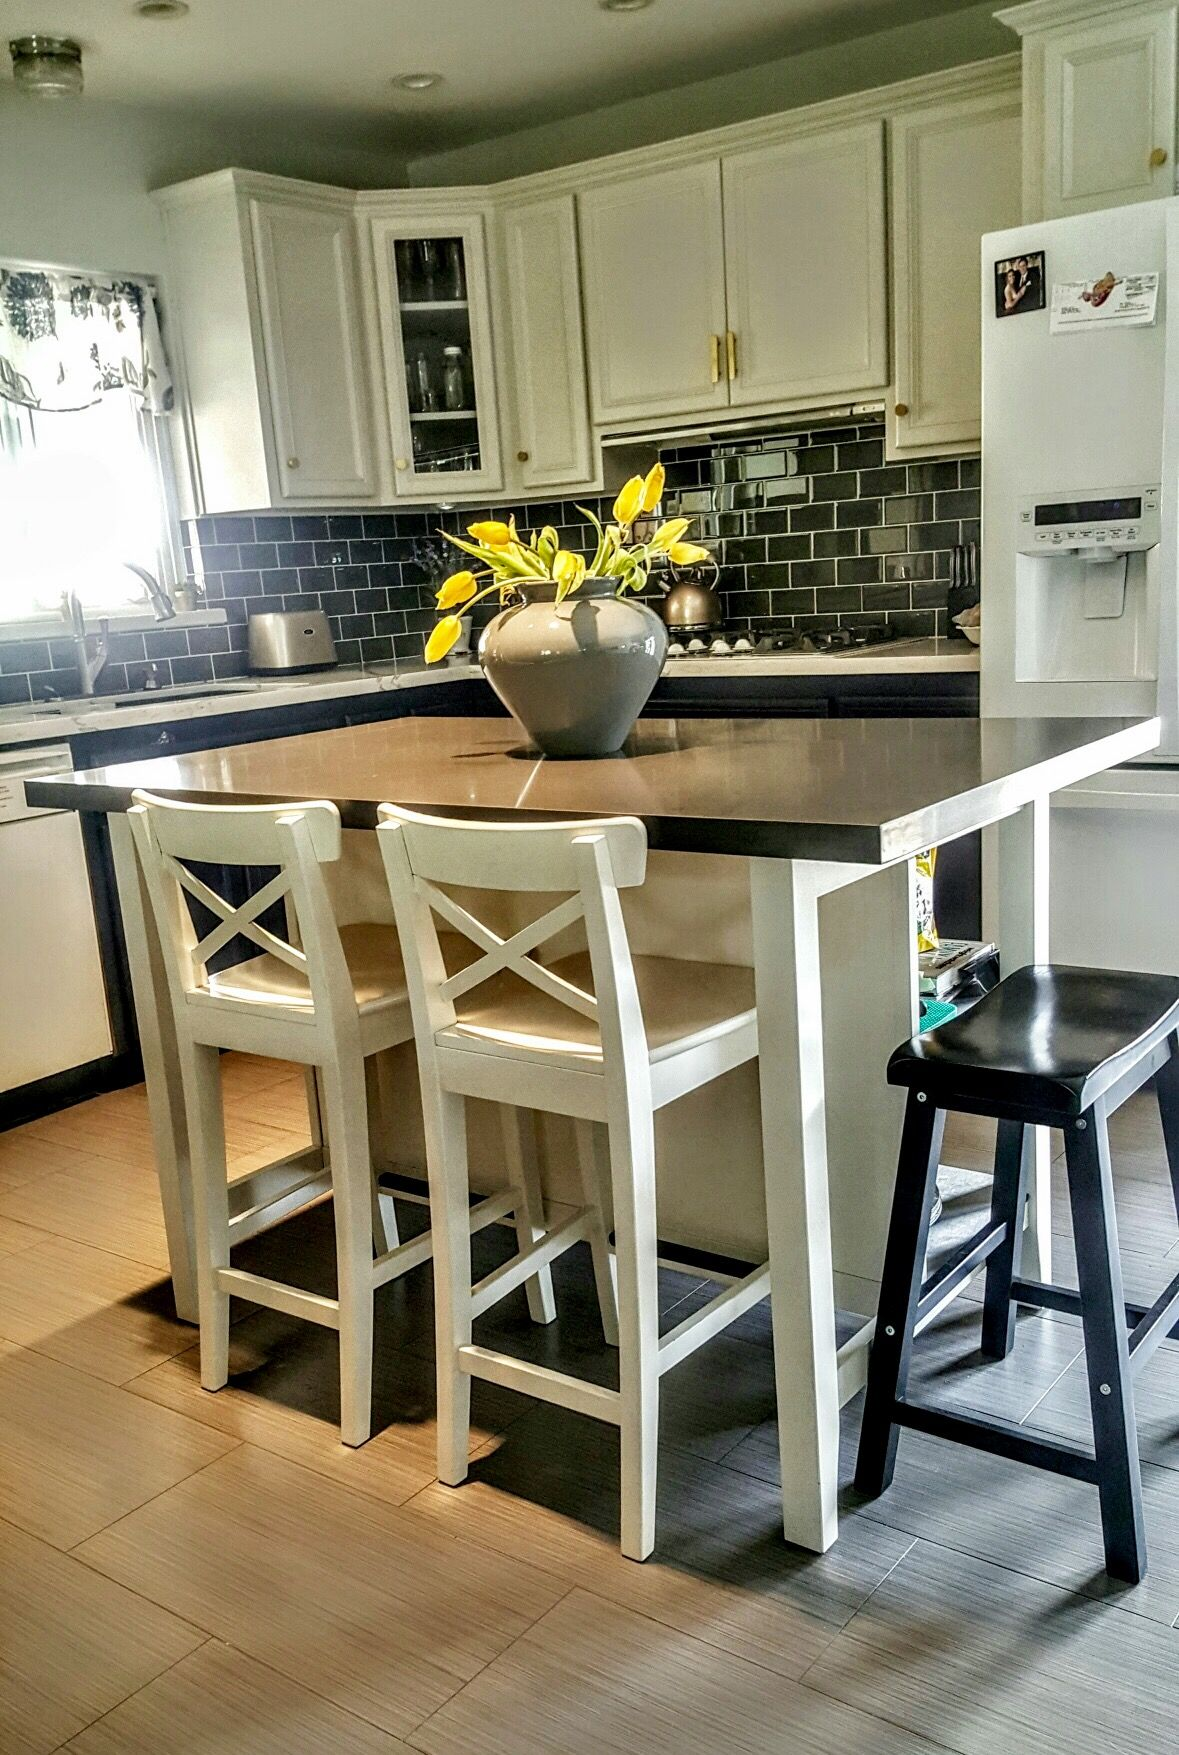 Bodbyn Kücheninsel Ikea Stenstorp Kitchen Island Hack We Added Grey